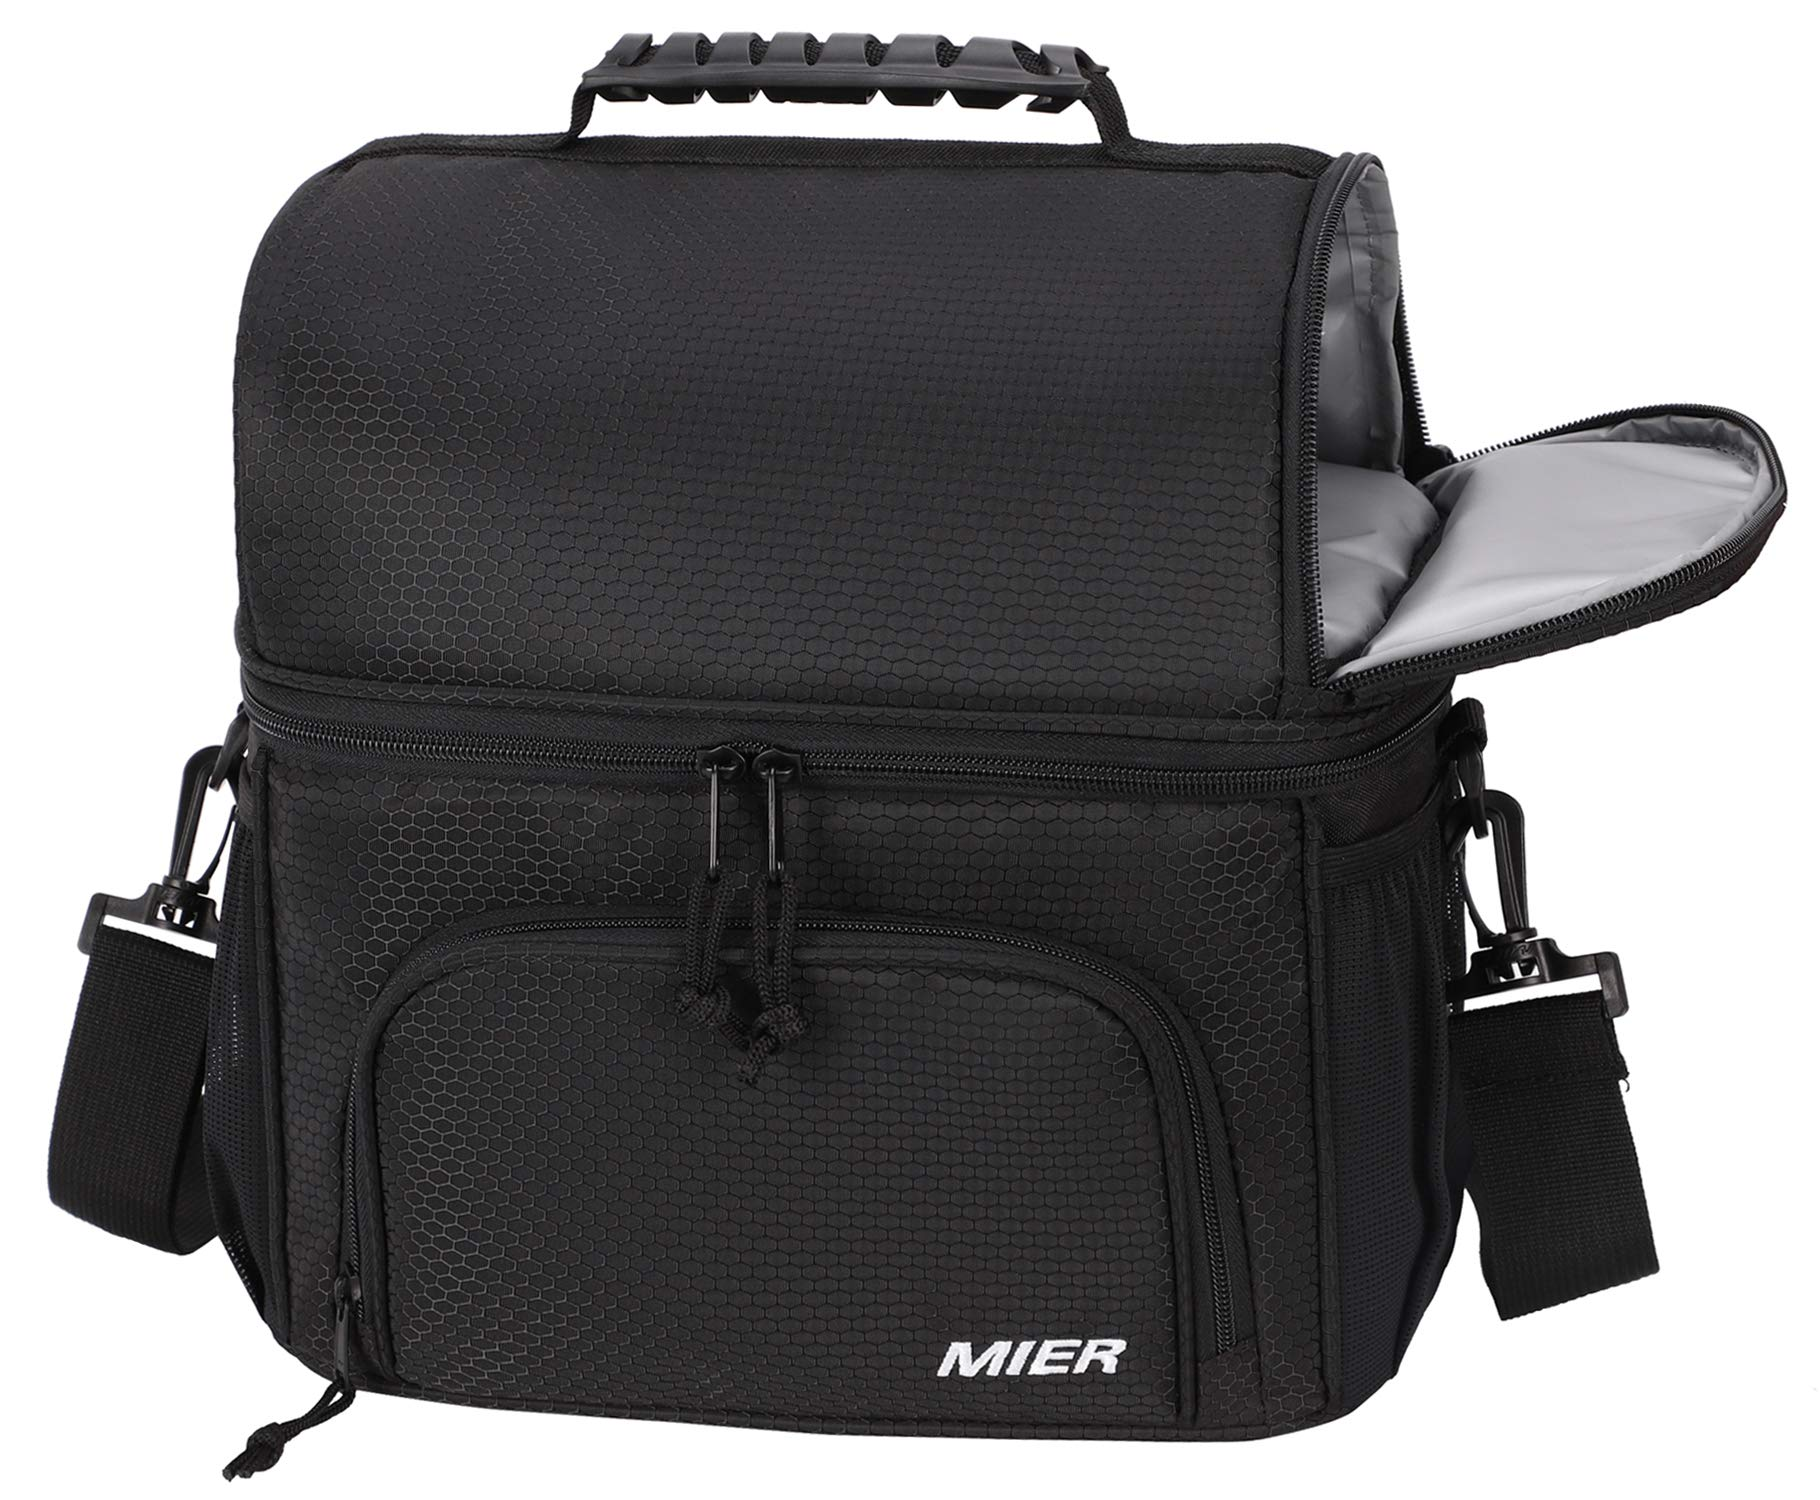 7b5750a29ab3 MIER Dual Compartment Cooler Bag Tote Adult Insulated Lunch Bag for ...